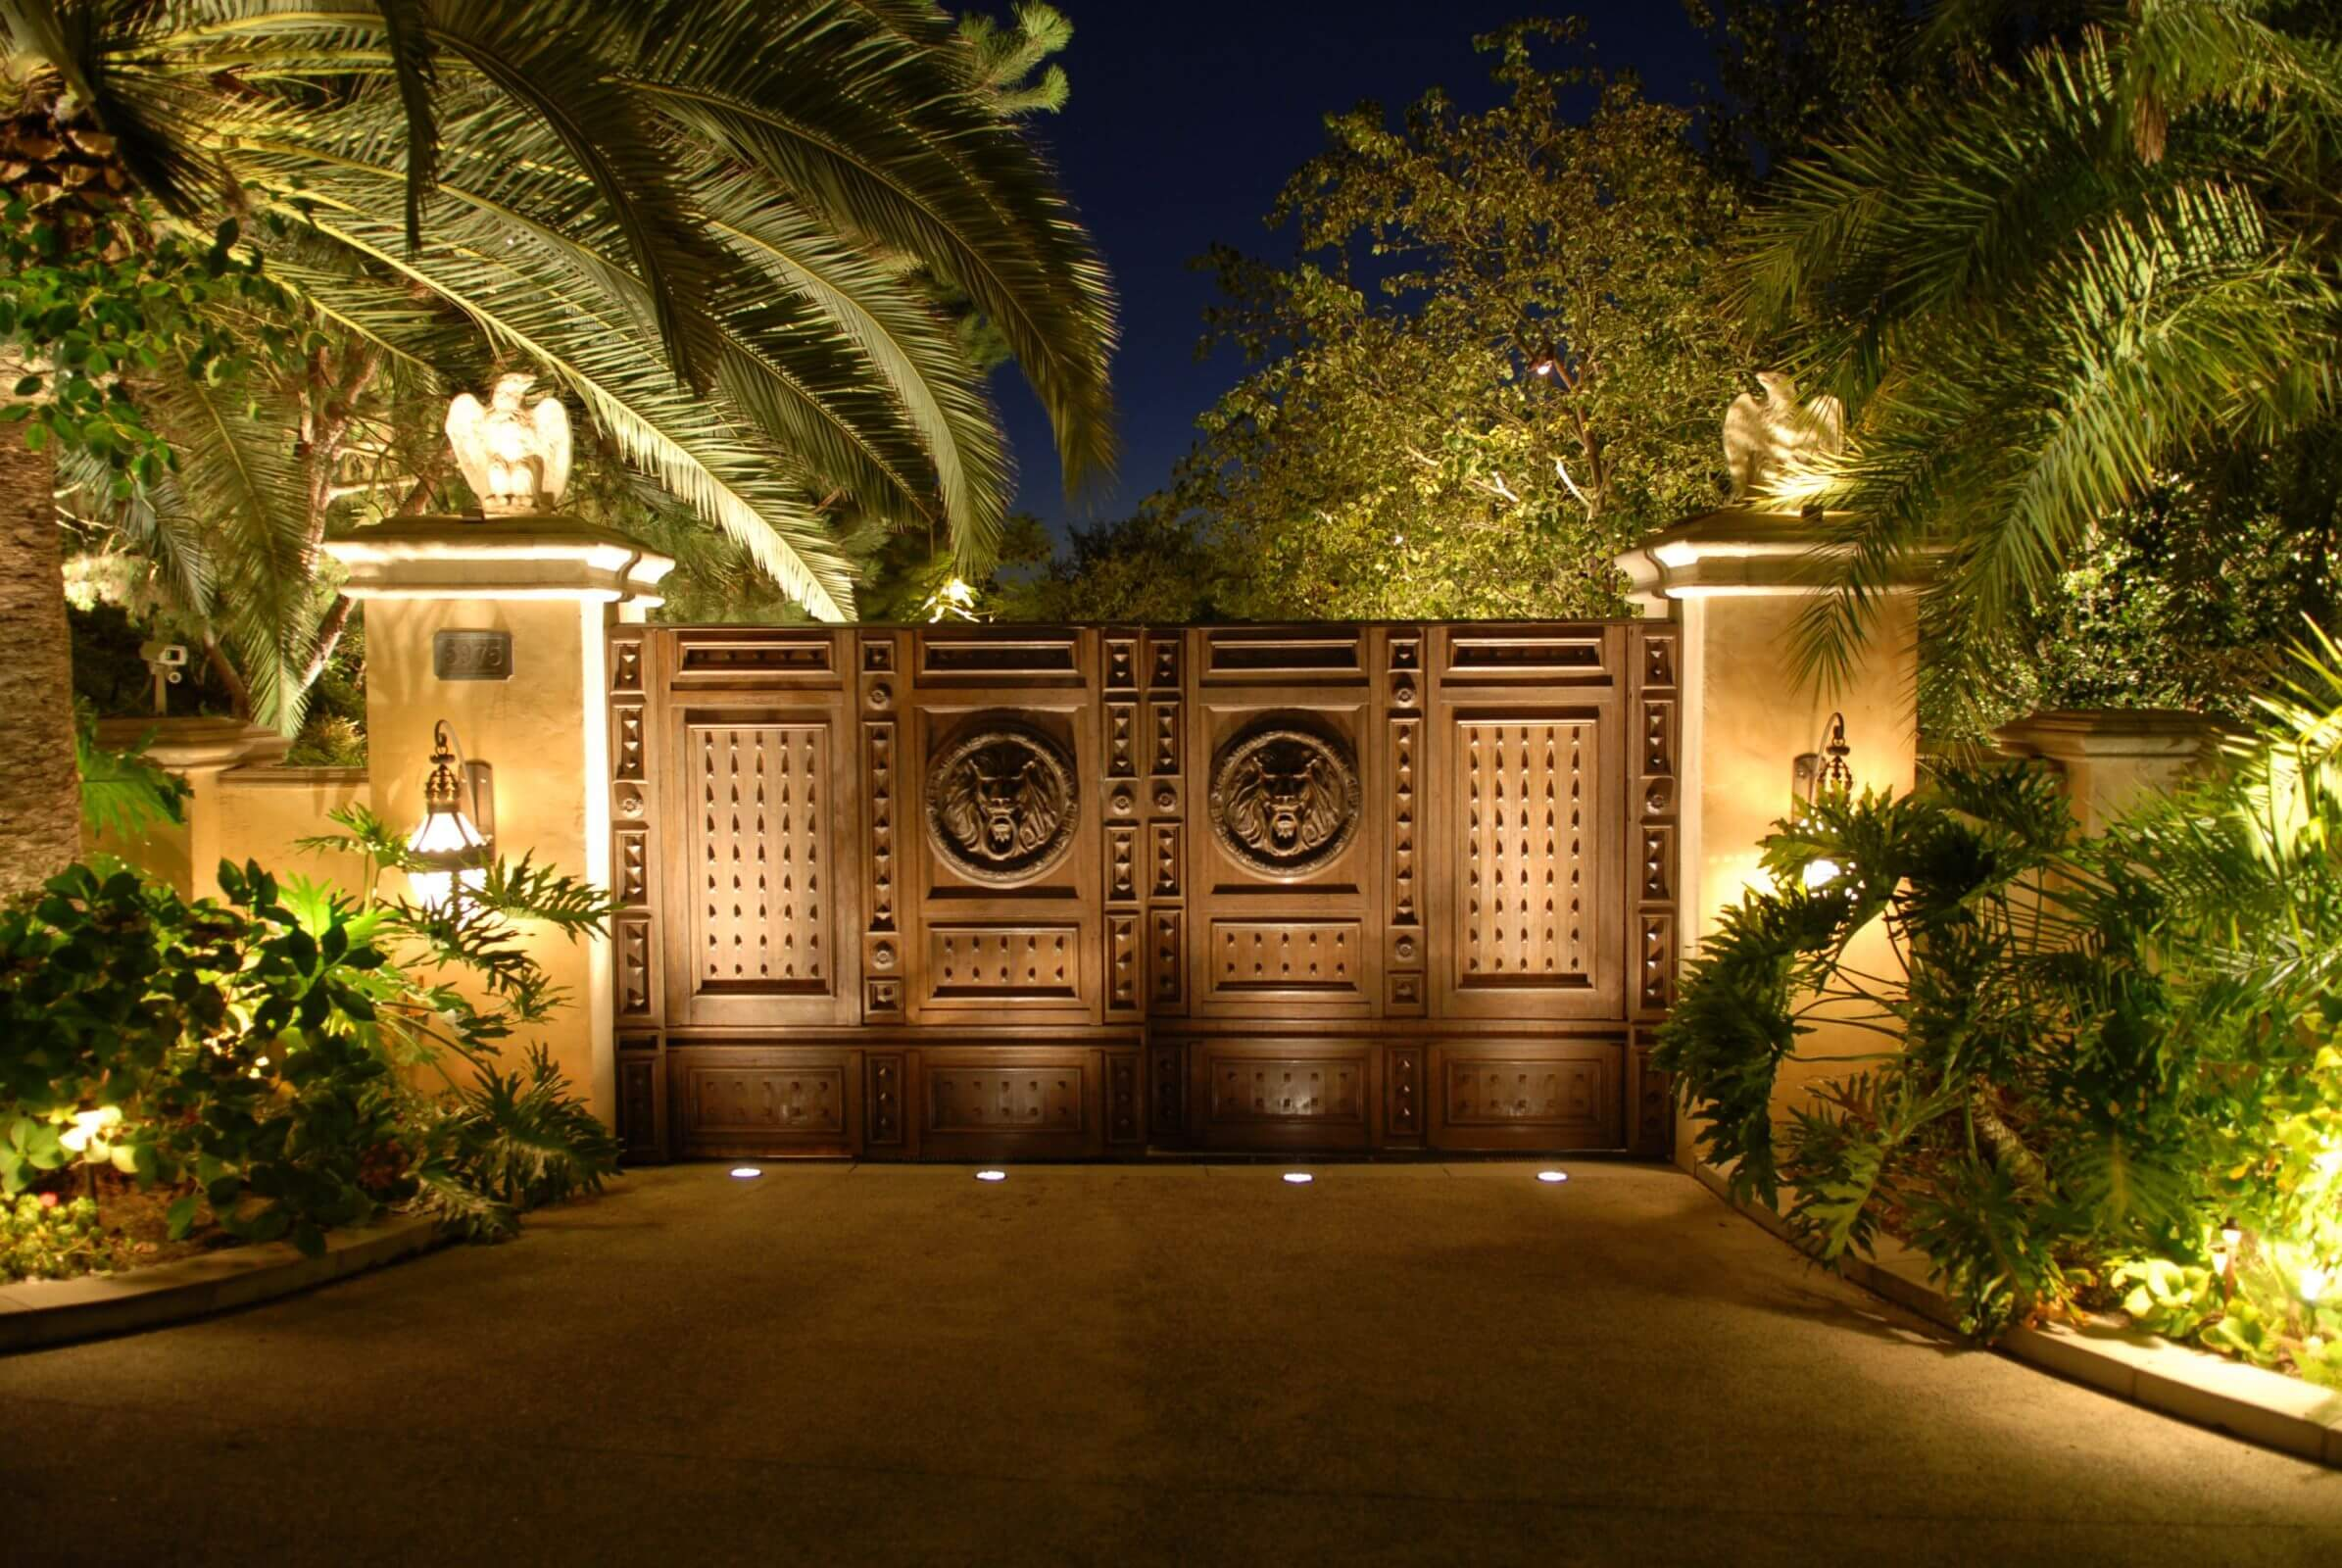 Illuminate the Entrance with an Outdoor Light